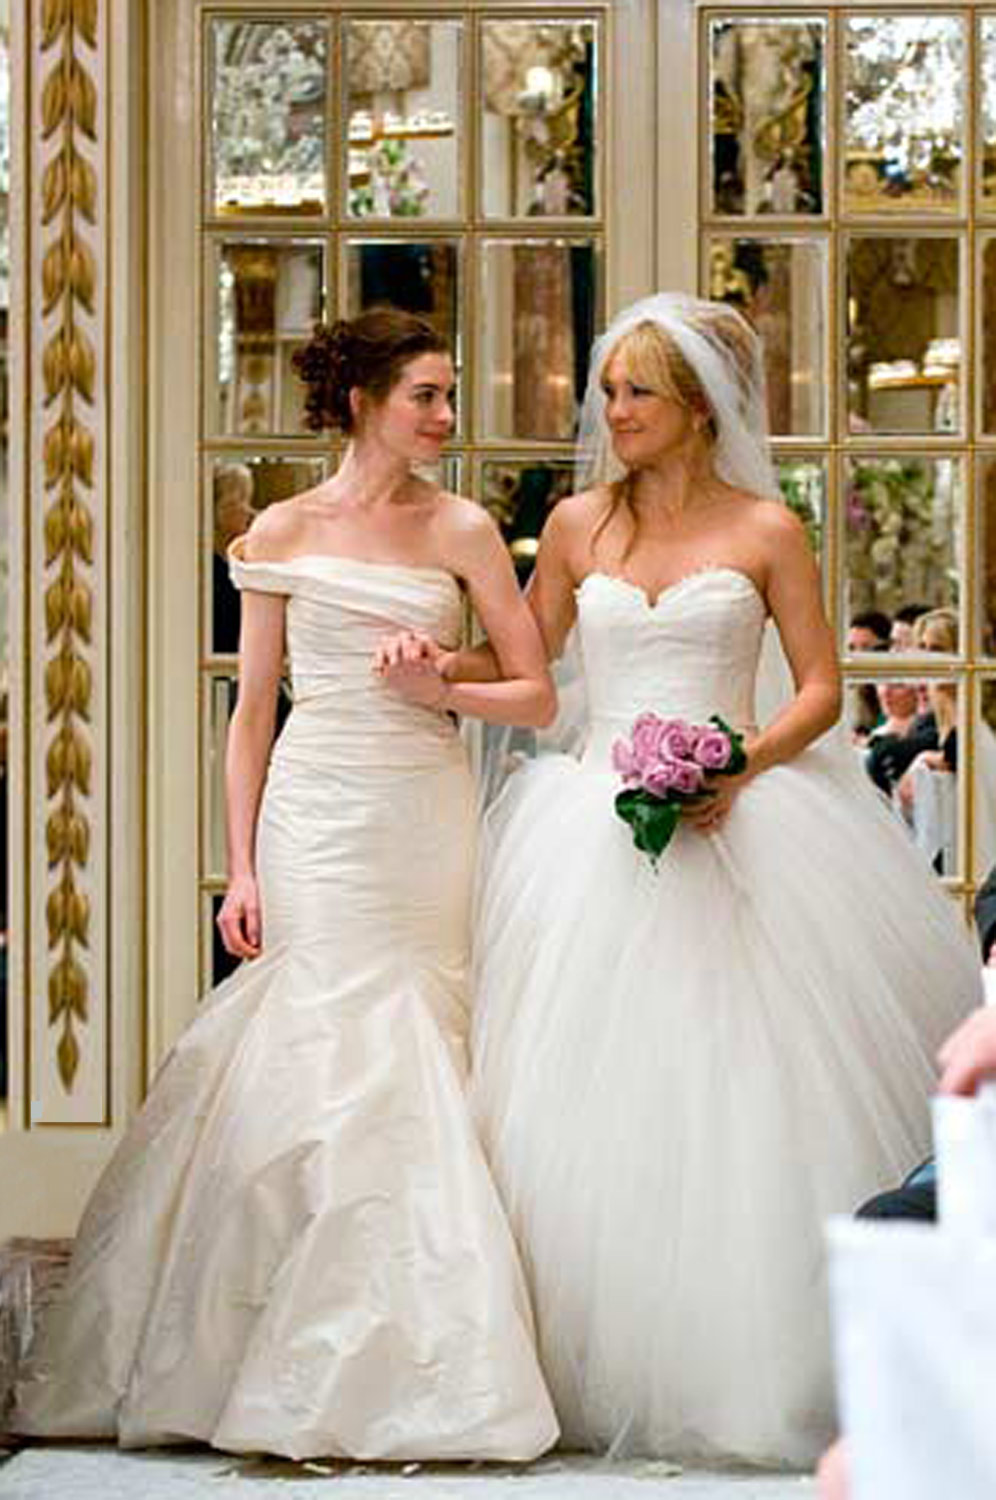 Anne Hathaway Wedding.Edressit New Anne Hathaway Wedding Gown 01110507a